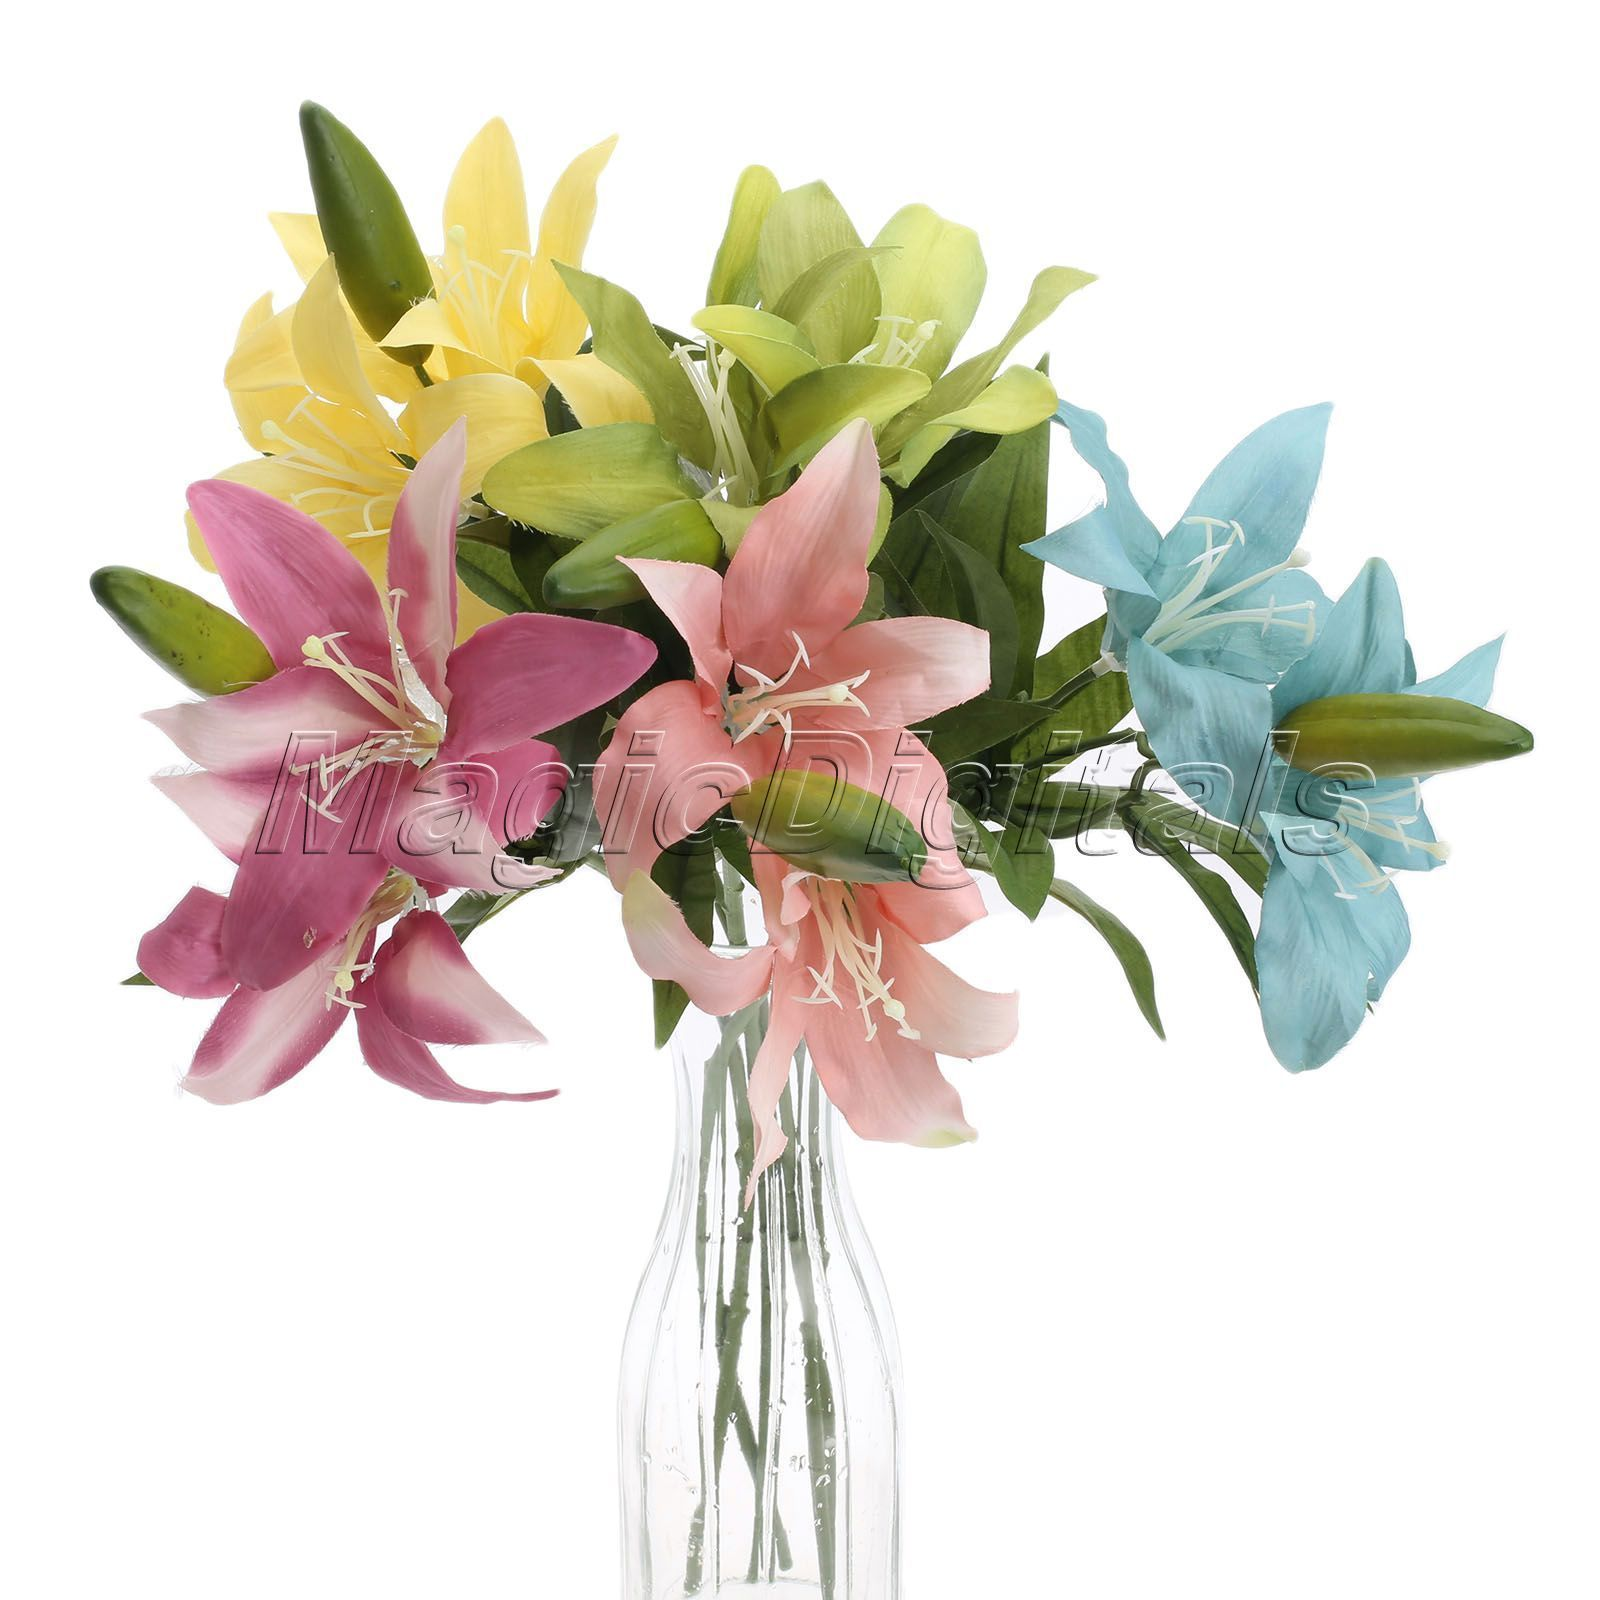 169 gbp artificial fake lily flowers leaf plants bouquet bridal artificial fake lily flowers leaf plants bouquet bridal wedding party home decor ebay home izmirmasajfo